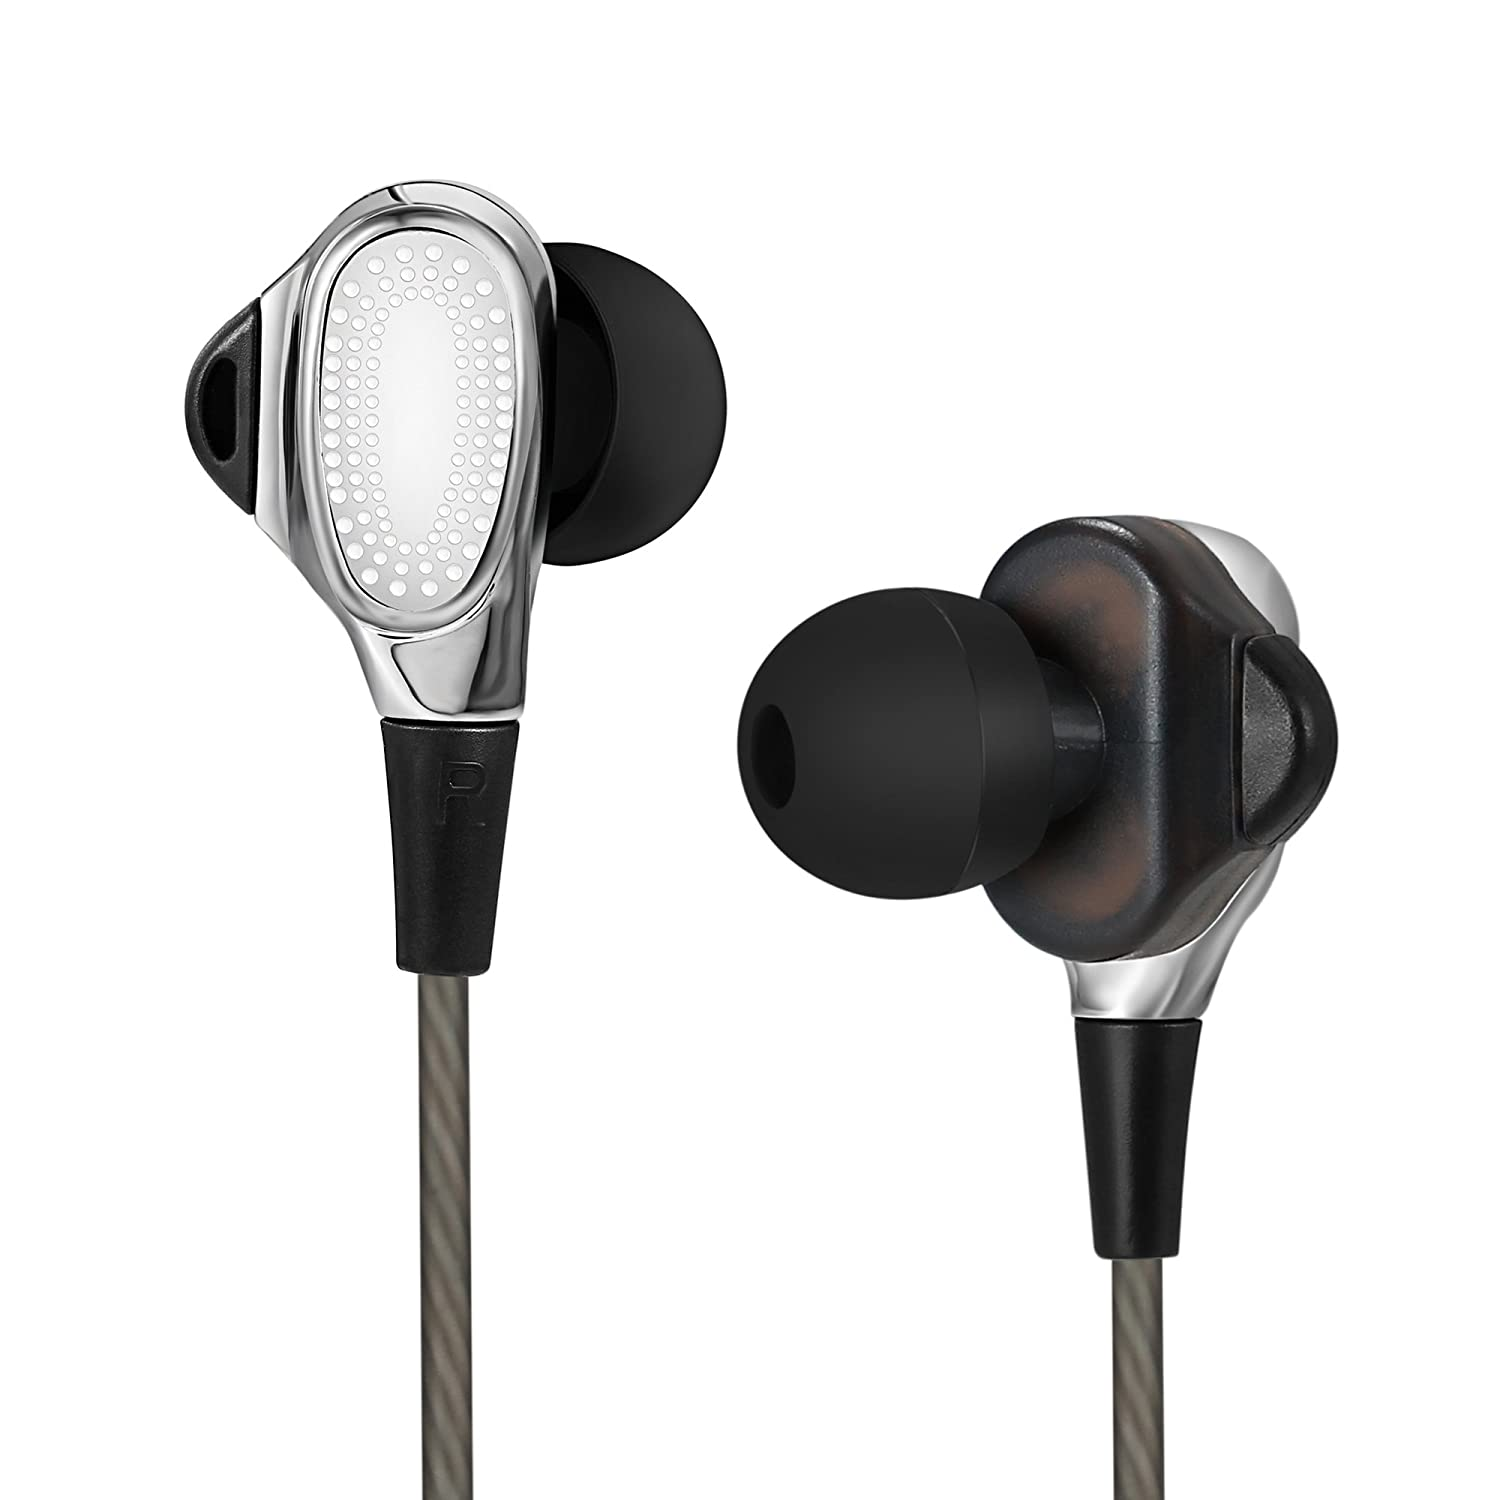 In-Ear Earbuds Headphones, Dual Dynamic Drivers Earphones , Headset with High-fidelity Audio and Deep Bass, Noise Reduction Volume, In line Controls for Hands-free Calling (3.5mm Jack)